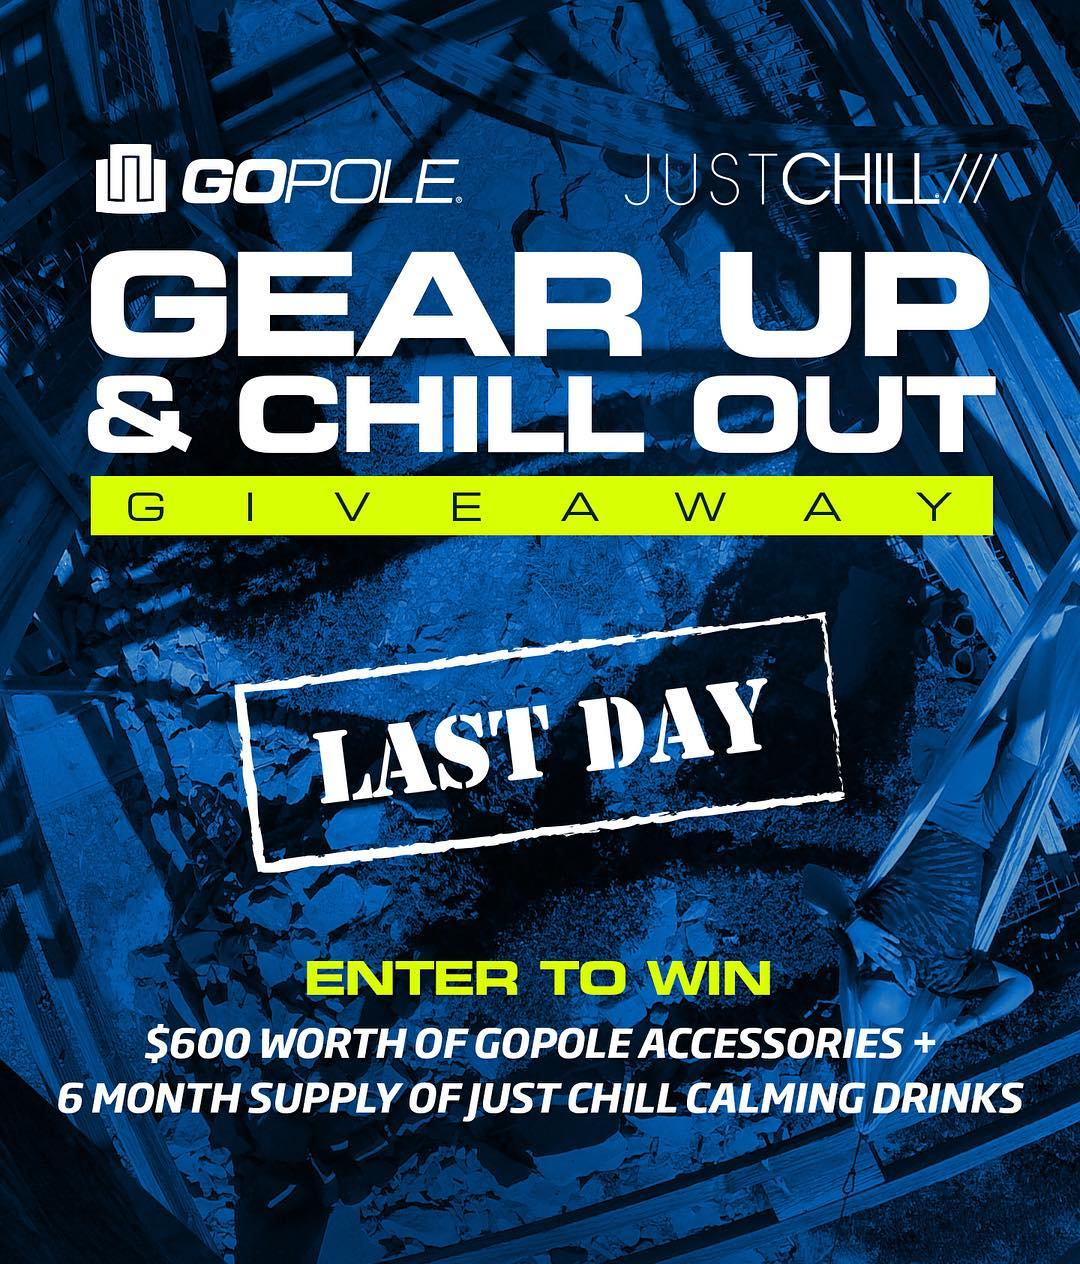 Last Day to Gear Up & Chill Out! Enter to win $600 worth of GoPole accessories + a 6 month supply of @justchill. Enter by clicking the link in our bio. #gopole #thechilllife #gearupandchillout